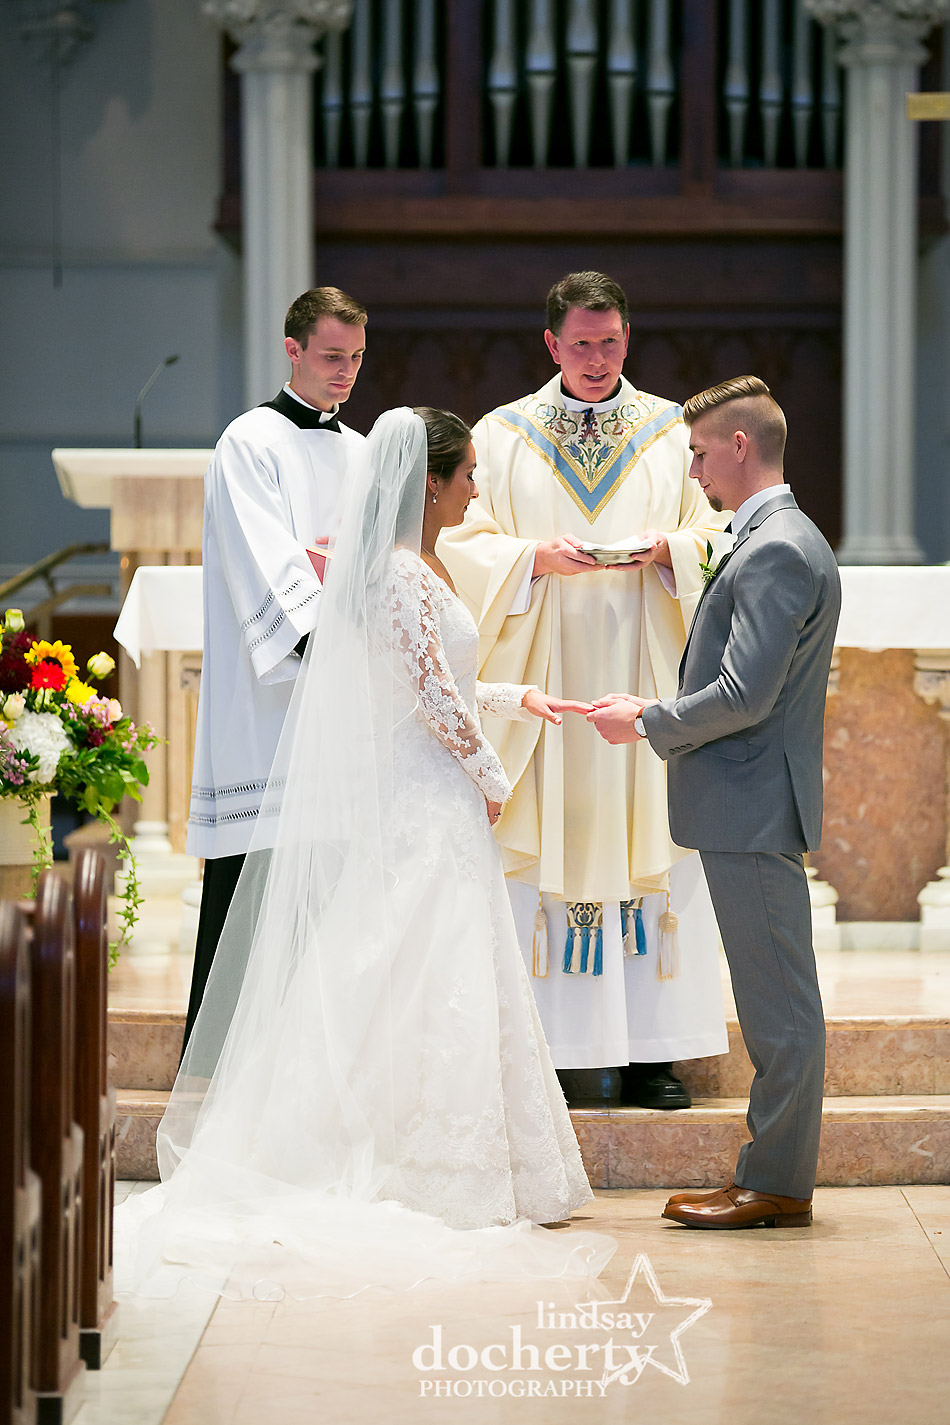 ring exchange at Villanova University Catholic wedding ceremony